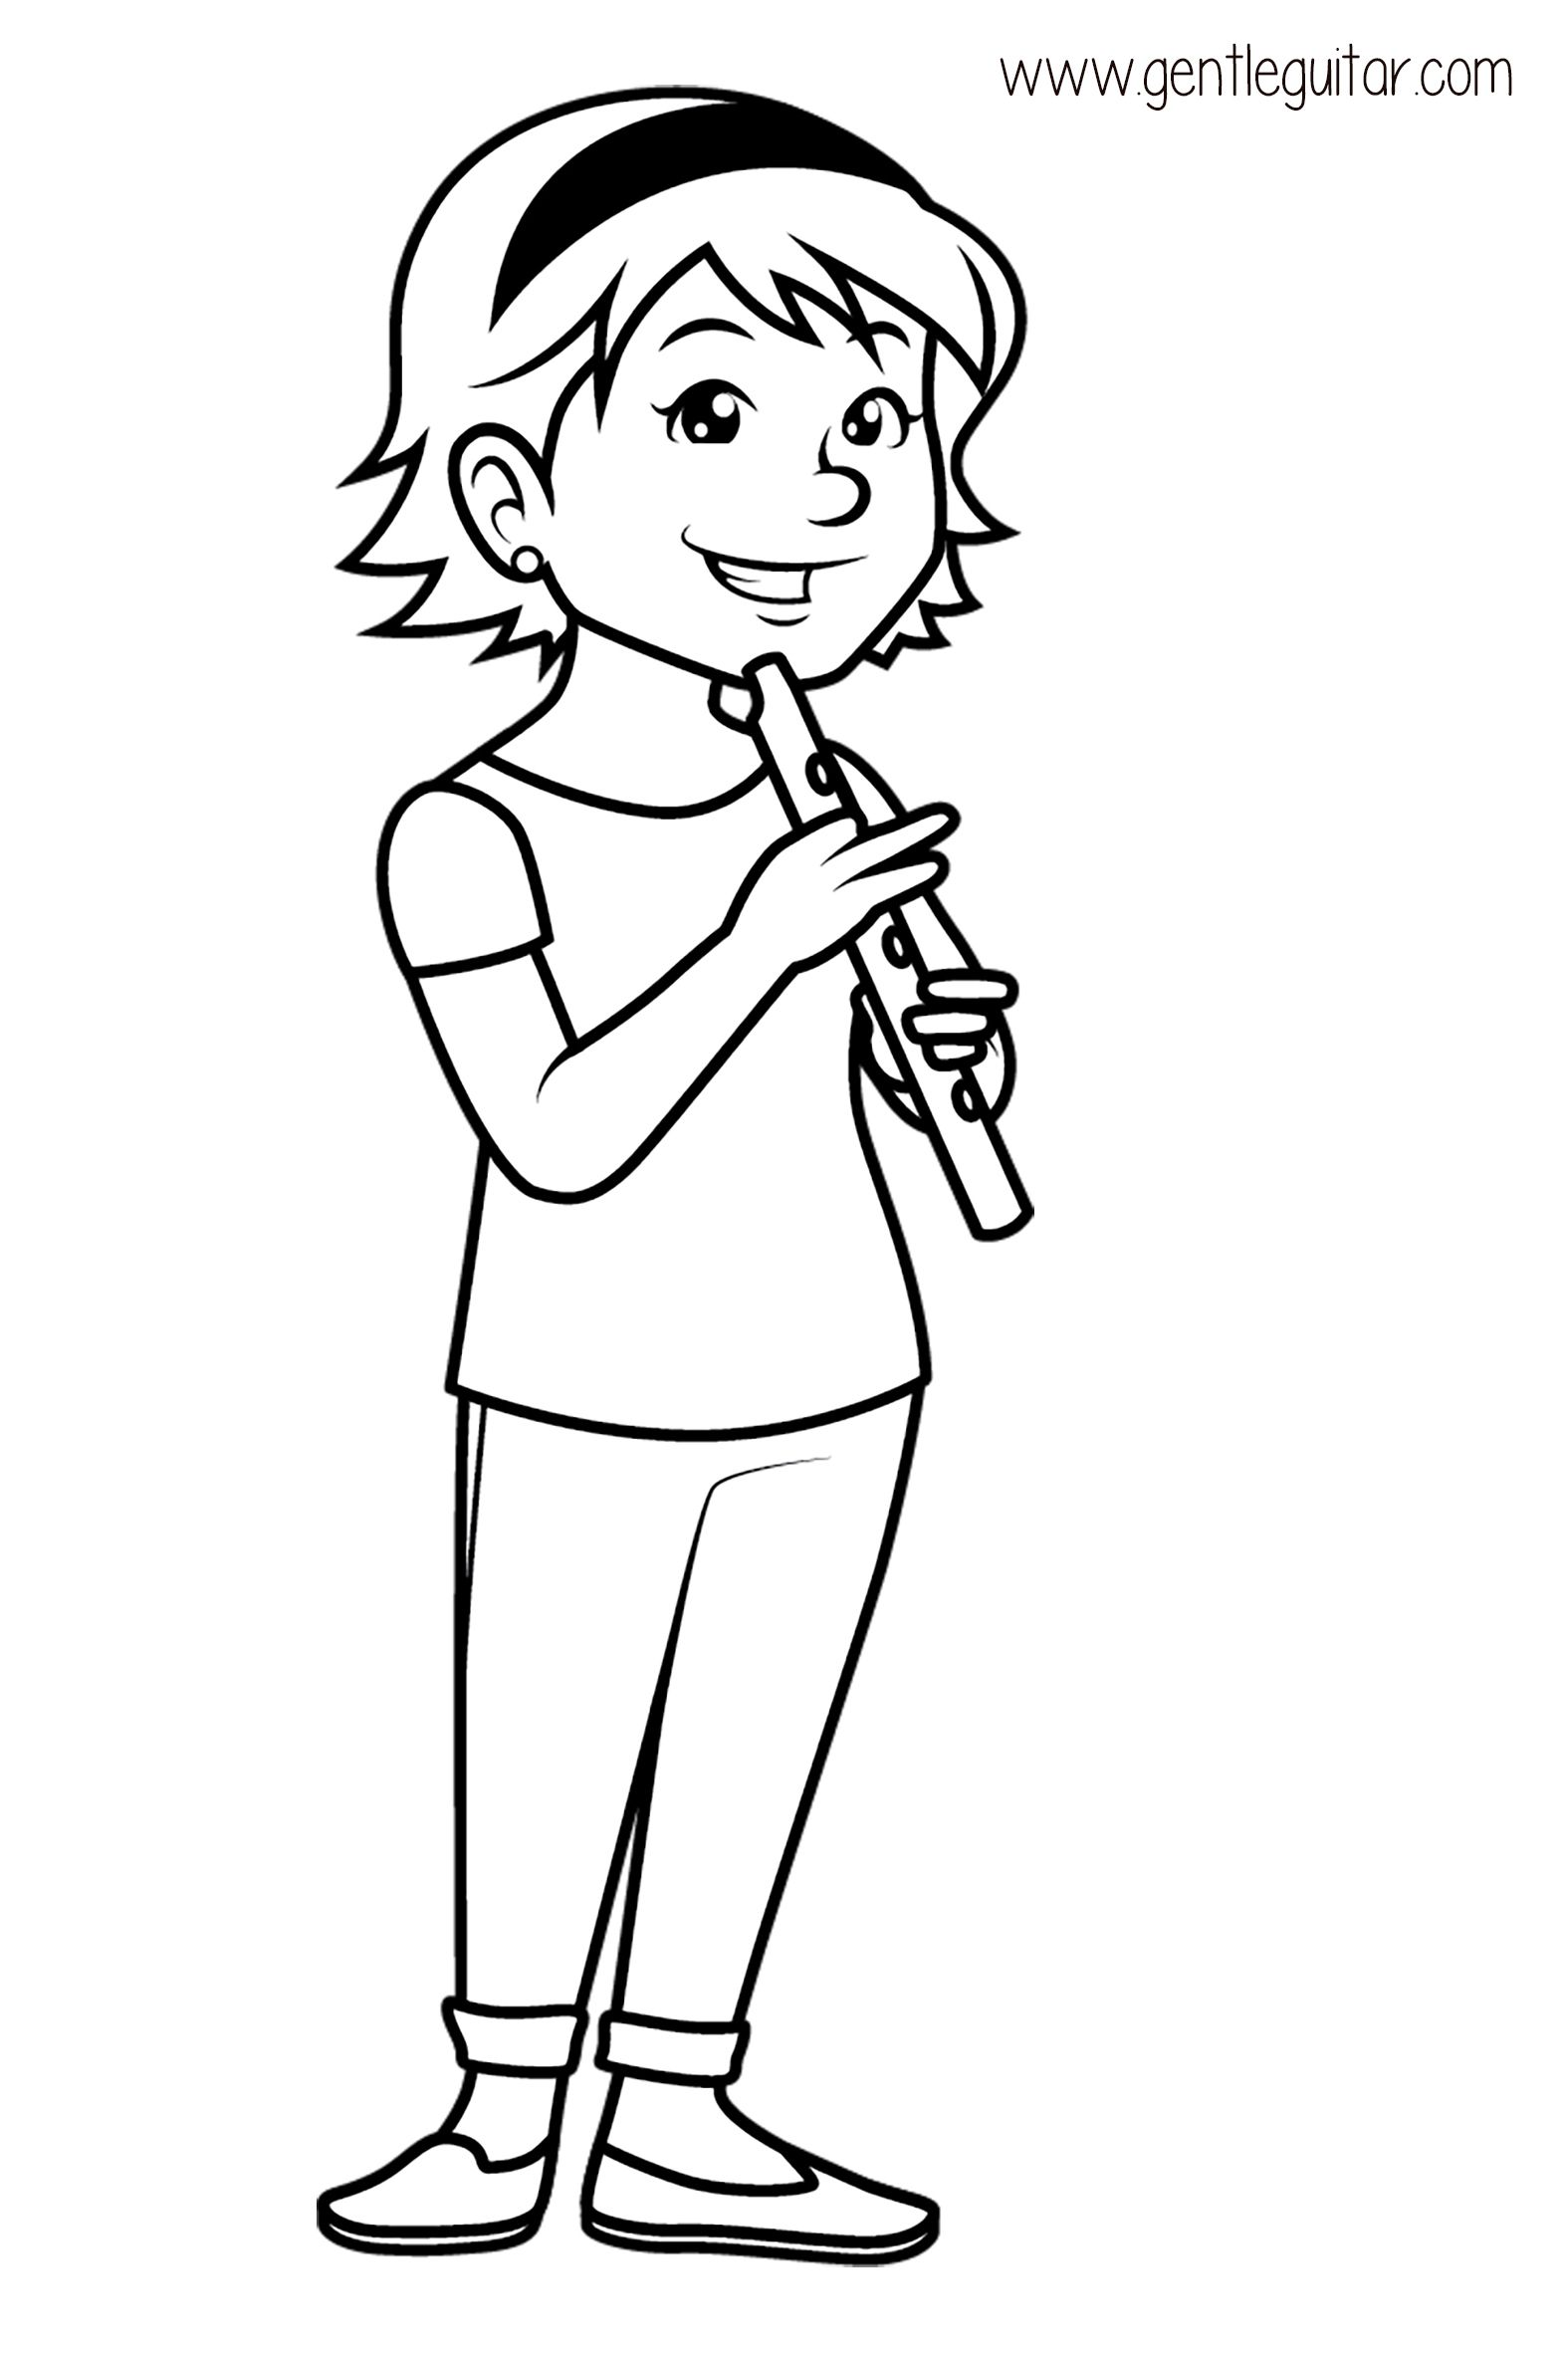 Coloring A Girl Playing A Flute Coloring Prepares